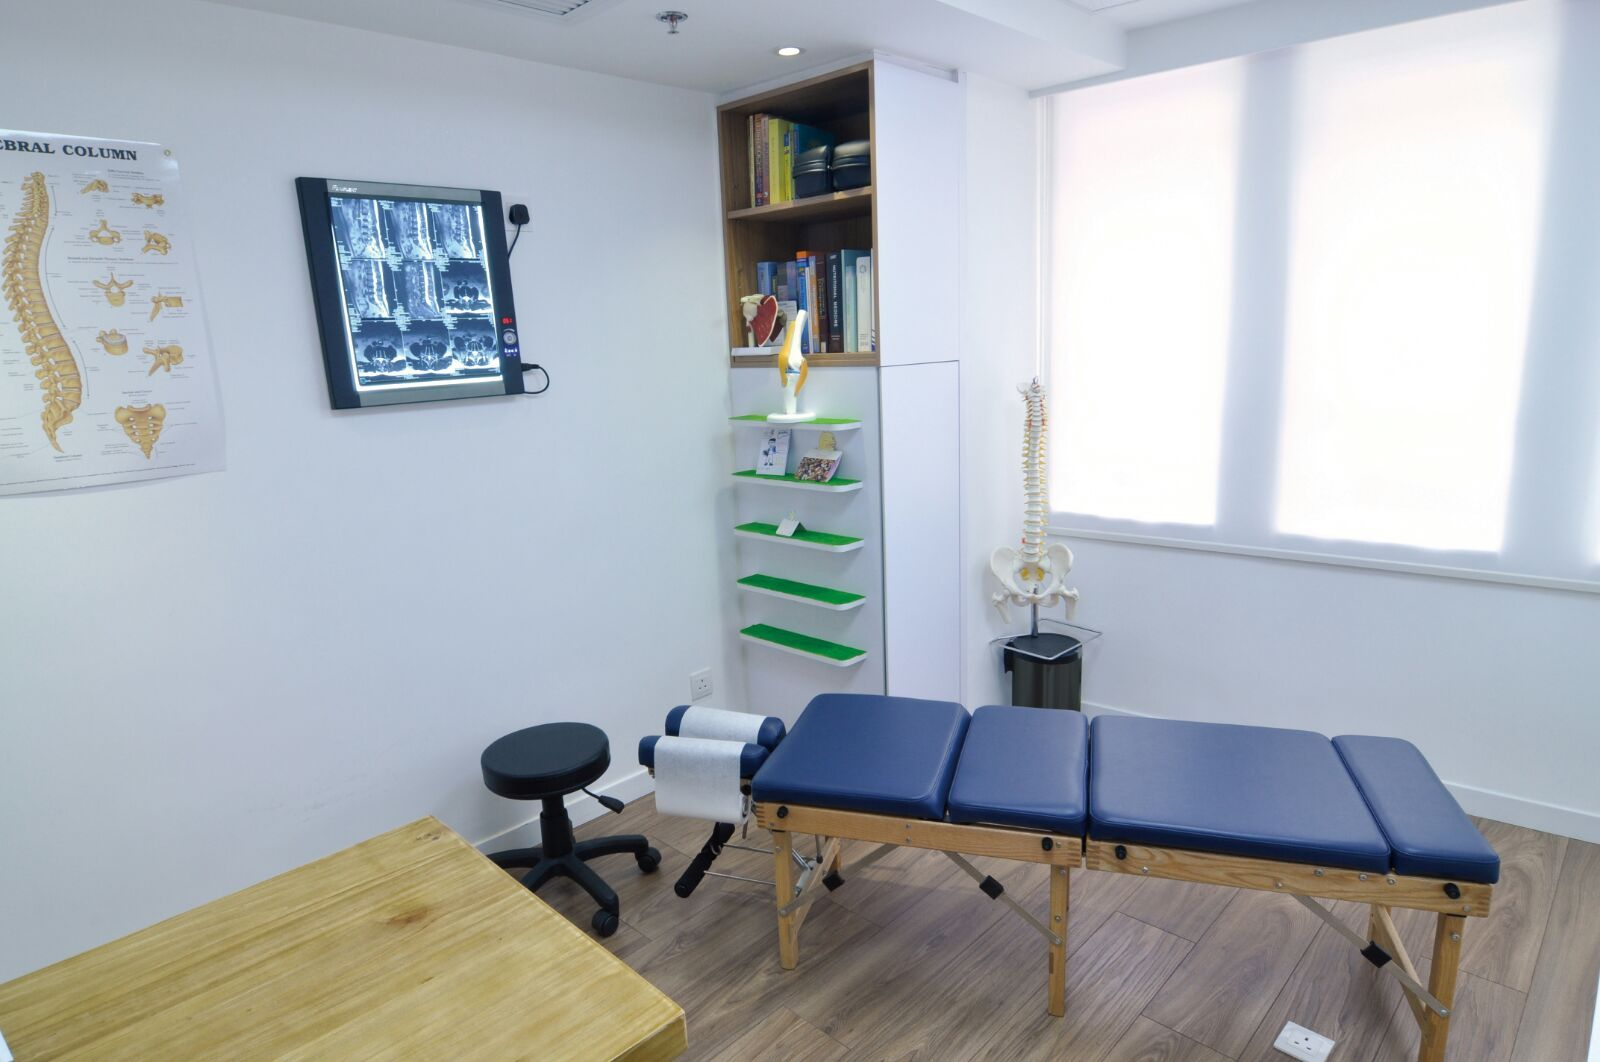 Physioplus Chiropractic Wellness Centre - Facilities & Equipment